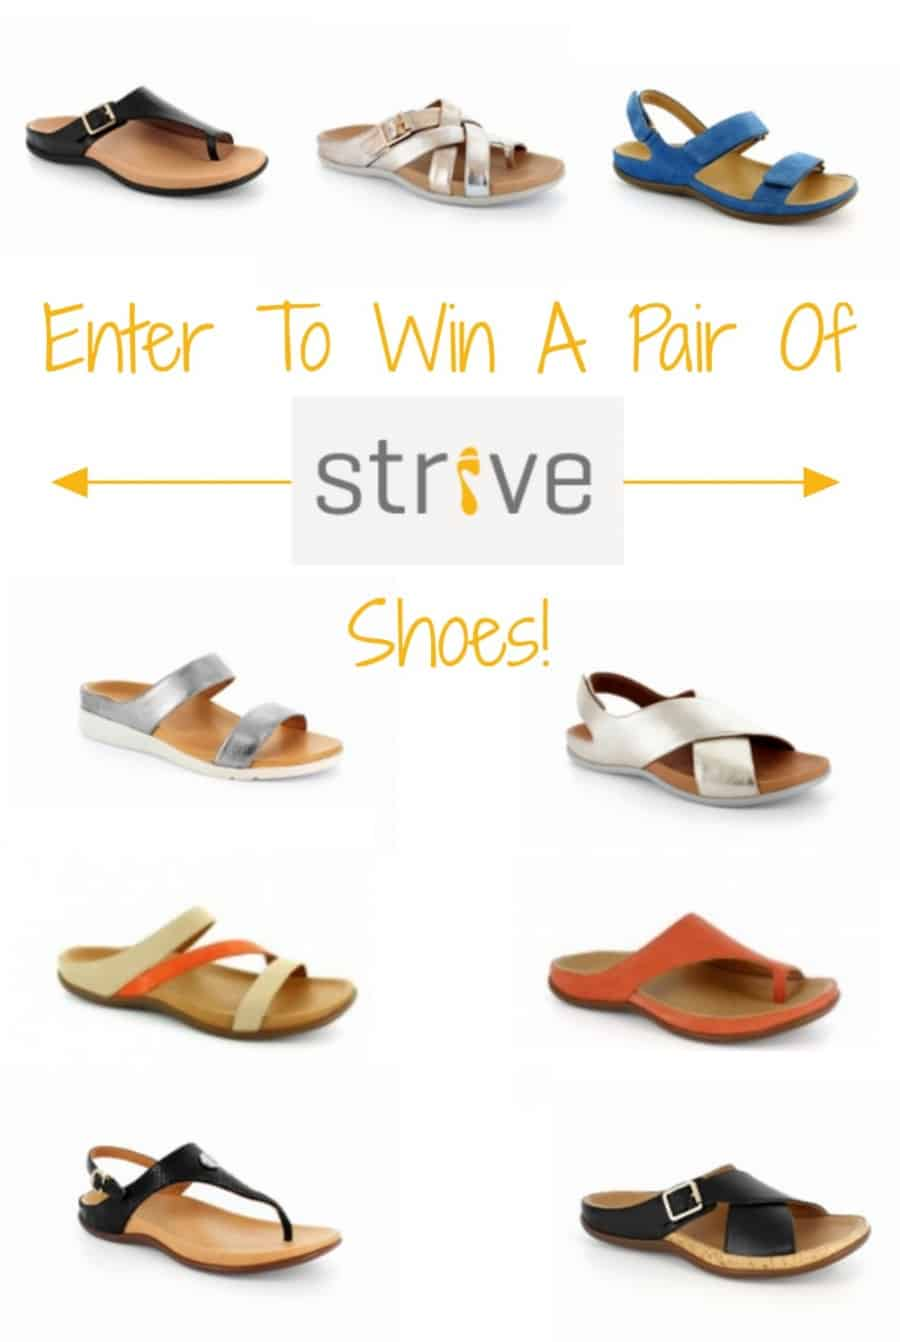 My Review of Strive Shoes - Are They